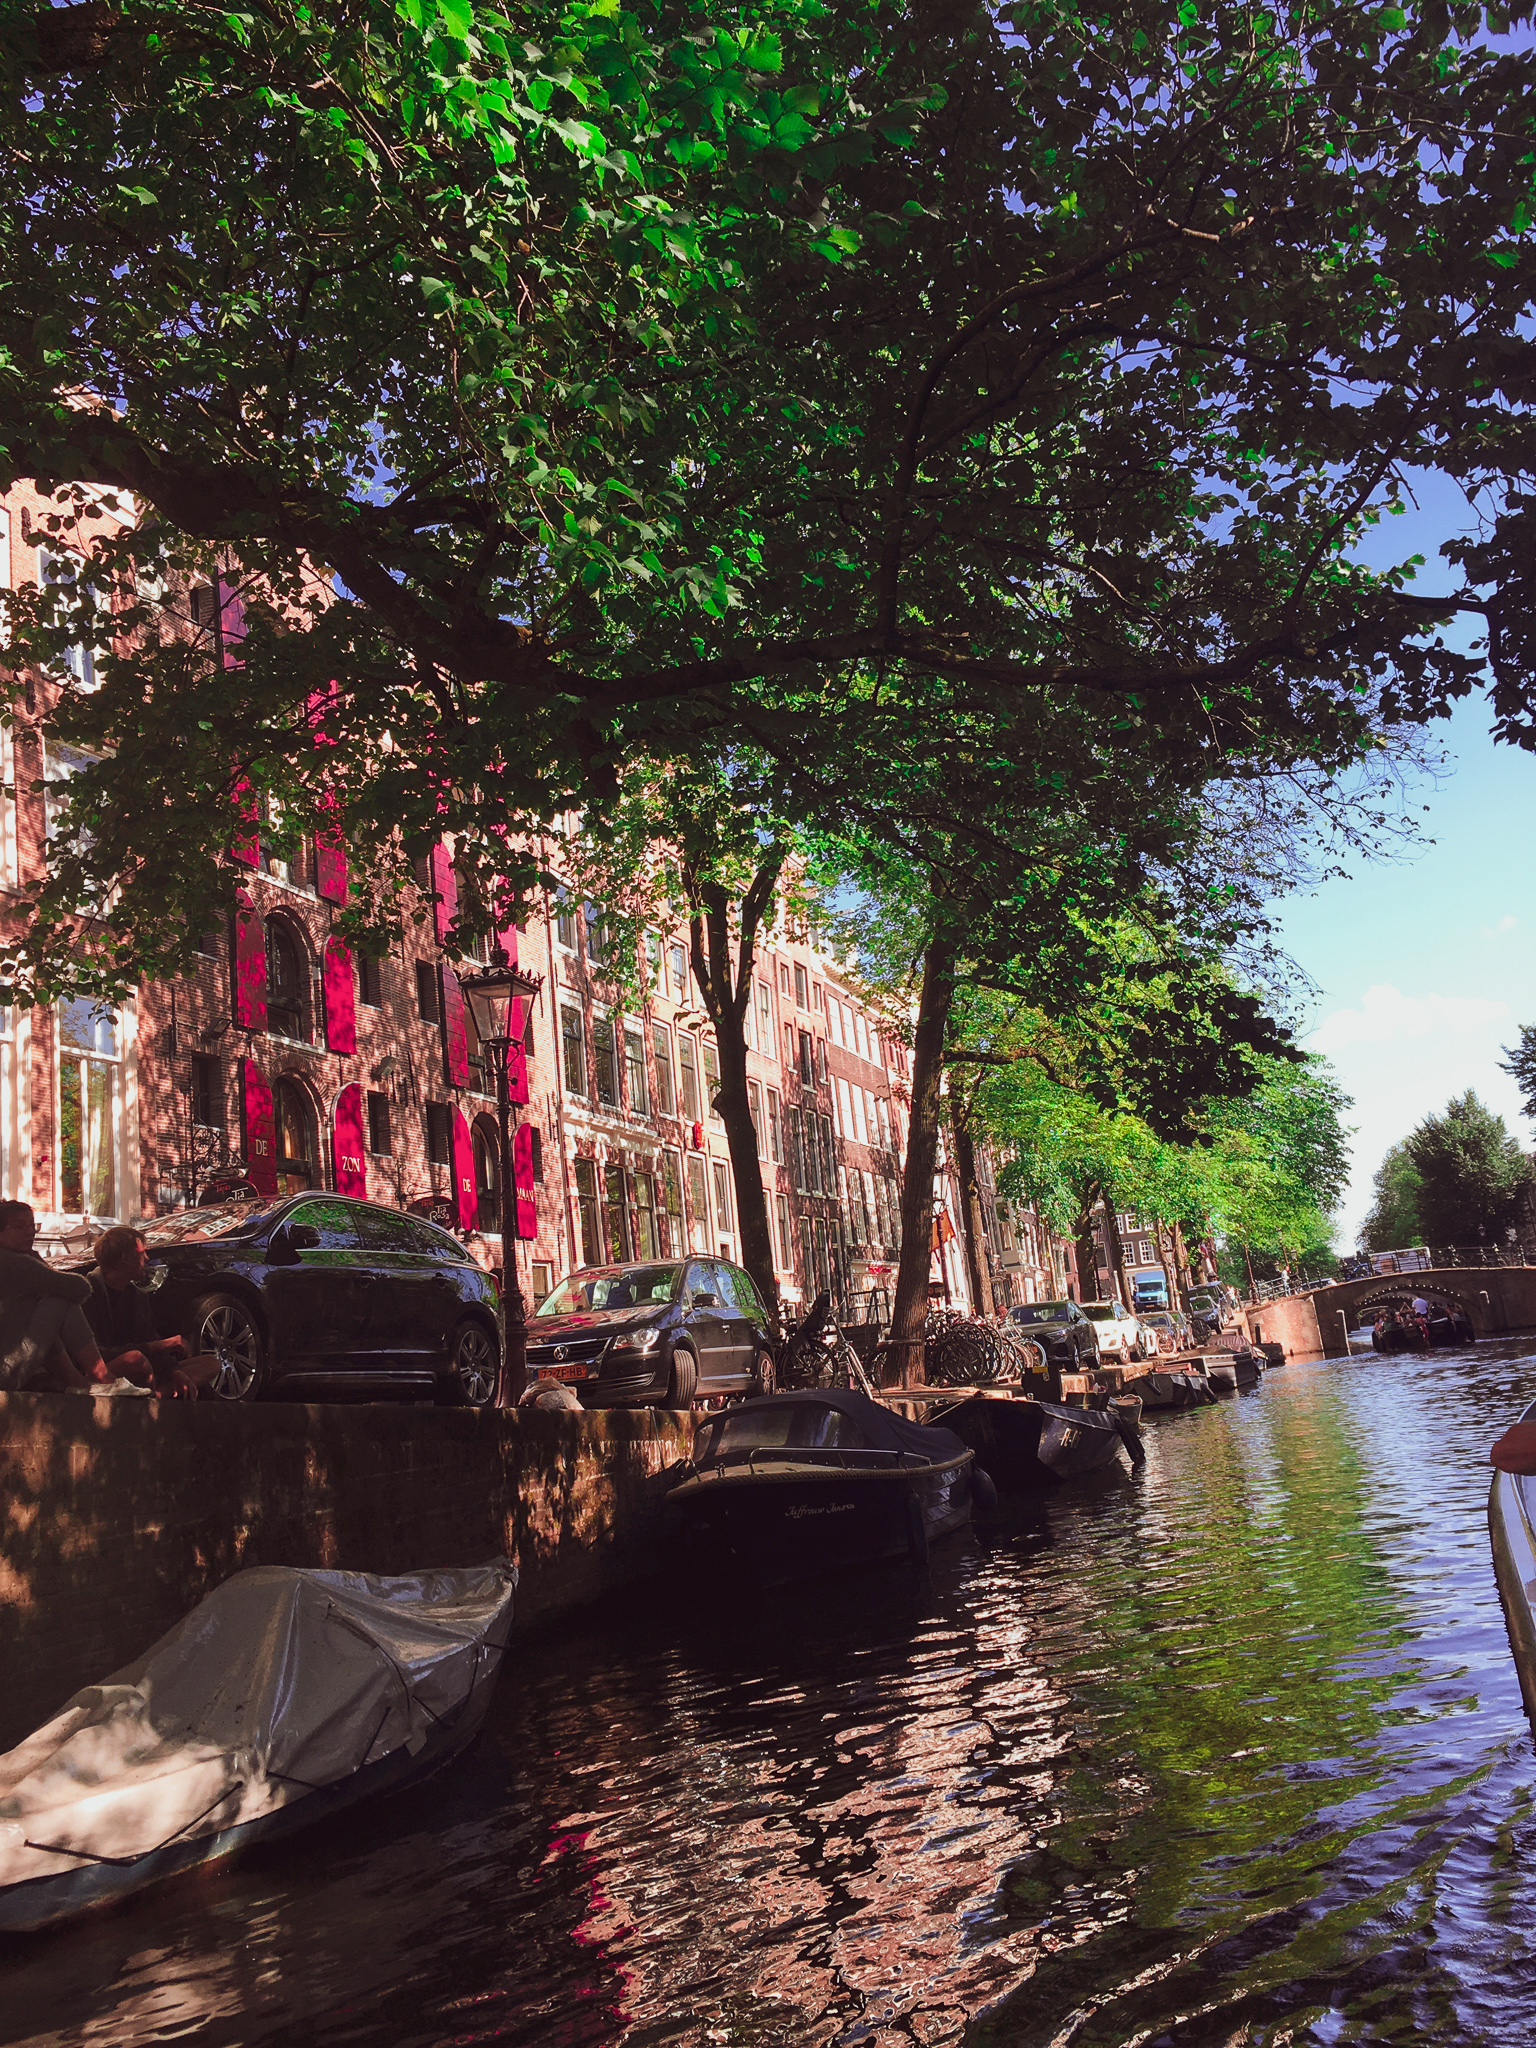 3-Day Amsterdam Itinerary